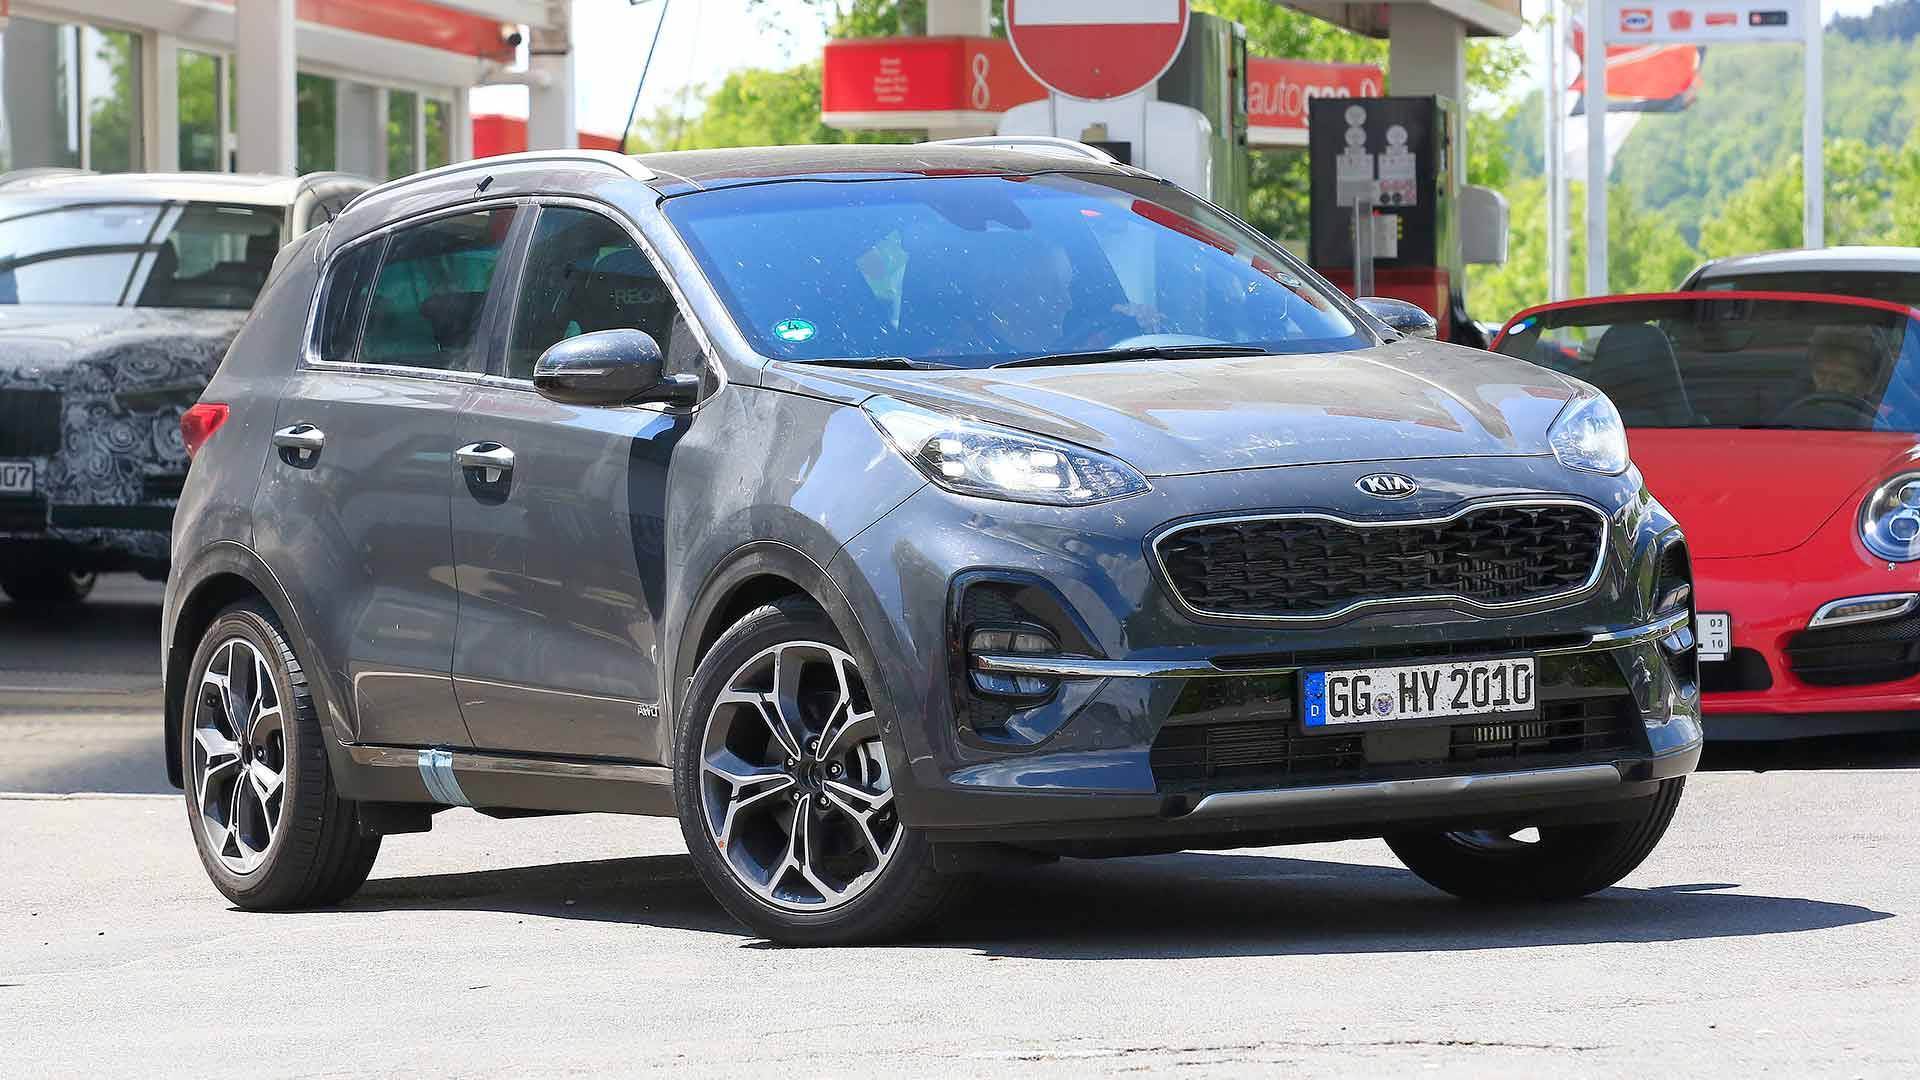 Looks like the South Korean automotive giant Kia Motors is starting to adopt the mild hybrid tech for its future releases